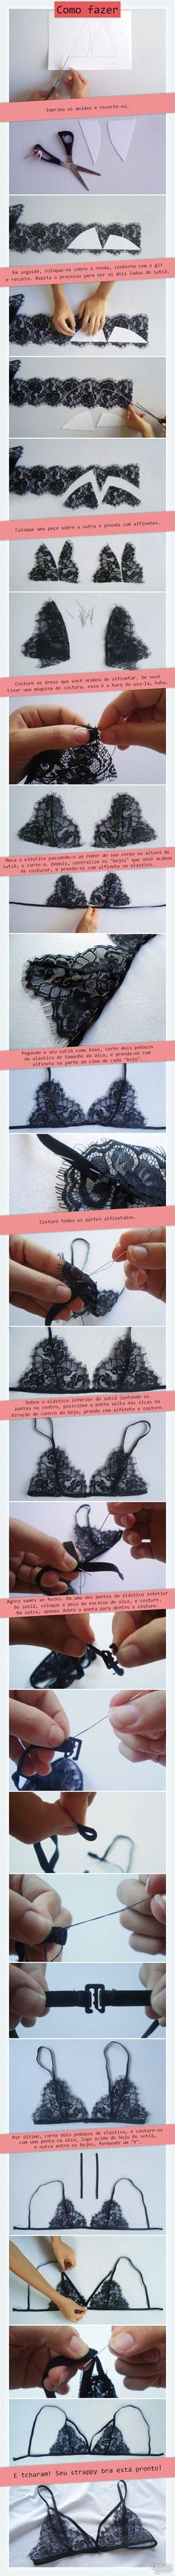 27 trendy ideas for sewing clothes bras Sewing Hacks, Sewing Tutorials, Sewing Projects, Sewing Patterns, Diy Clothing, Sewing Clothes, Upcycle T Shirts, Diy Bralette, Diy Vetement